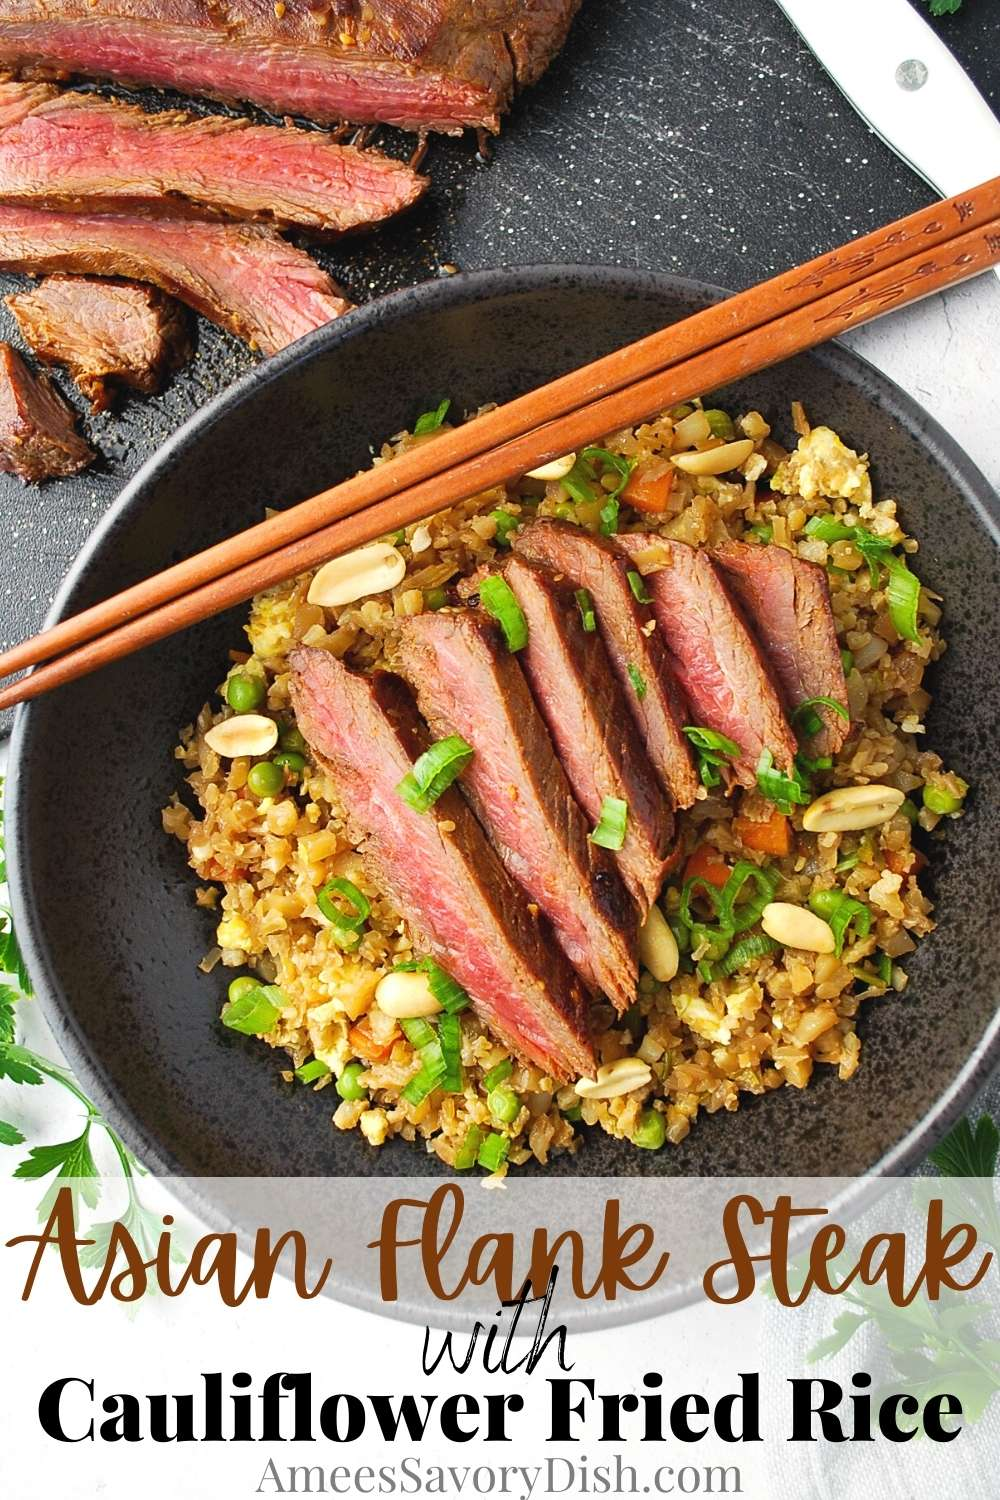 #Ad Grilled Asian Flank Steak with Cauliflower Fried Rice is a flavorful low-carb meal that's ready in under 30 minutes! The perfect qu ick and easy recipe for busy weeknights. @adaptablemeals #AdapTableMeals #AdapTablePartner #easydinners via @Ameessavorydish